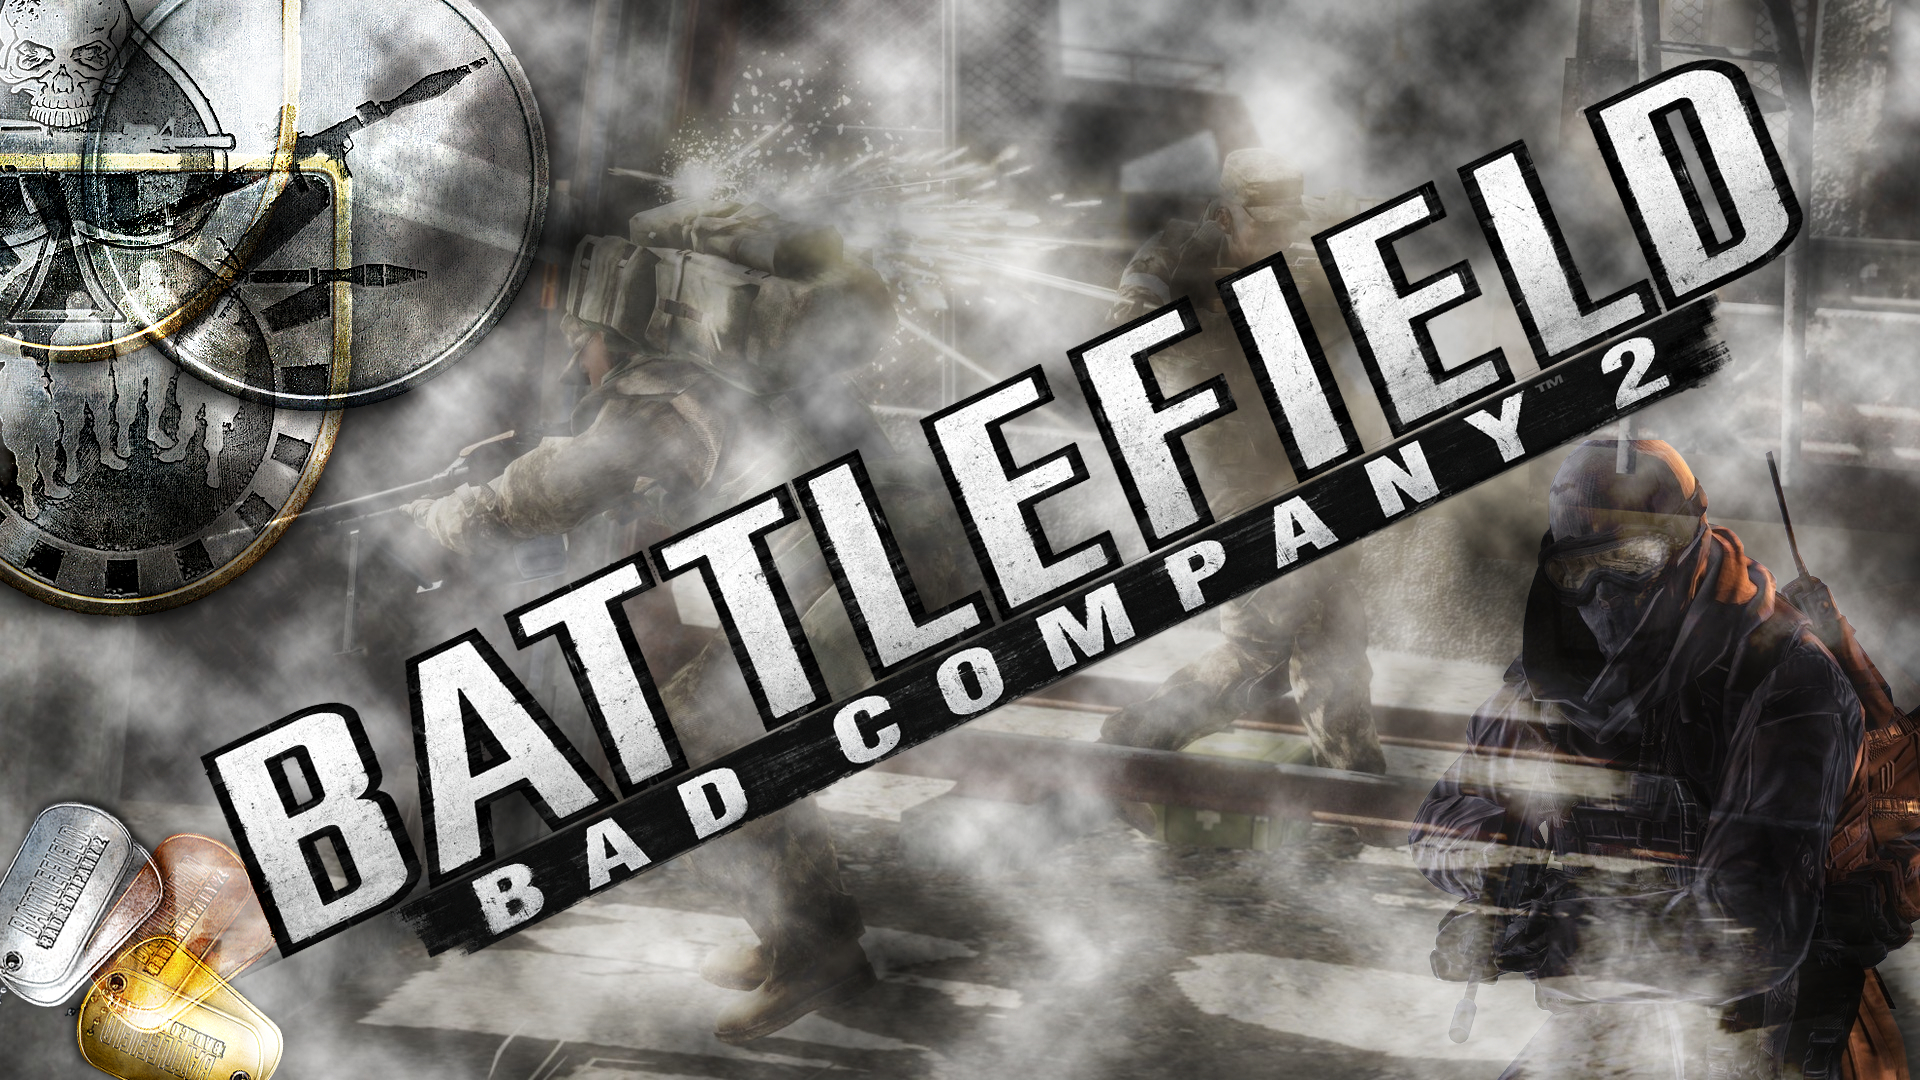 battlefield old Jackplex bad HD Wallpaper